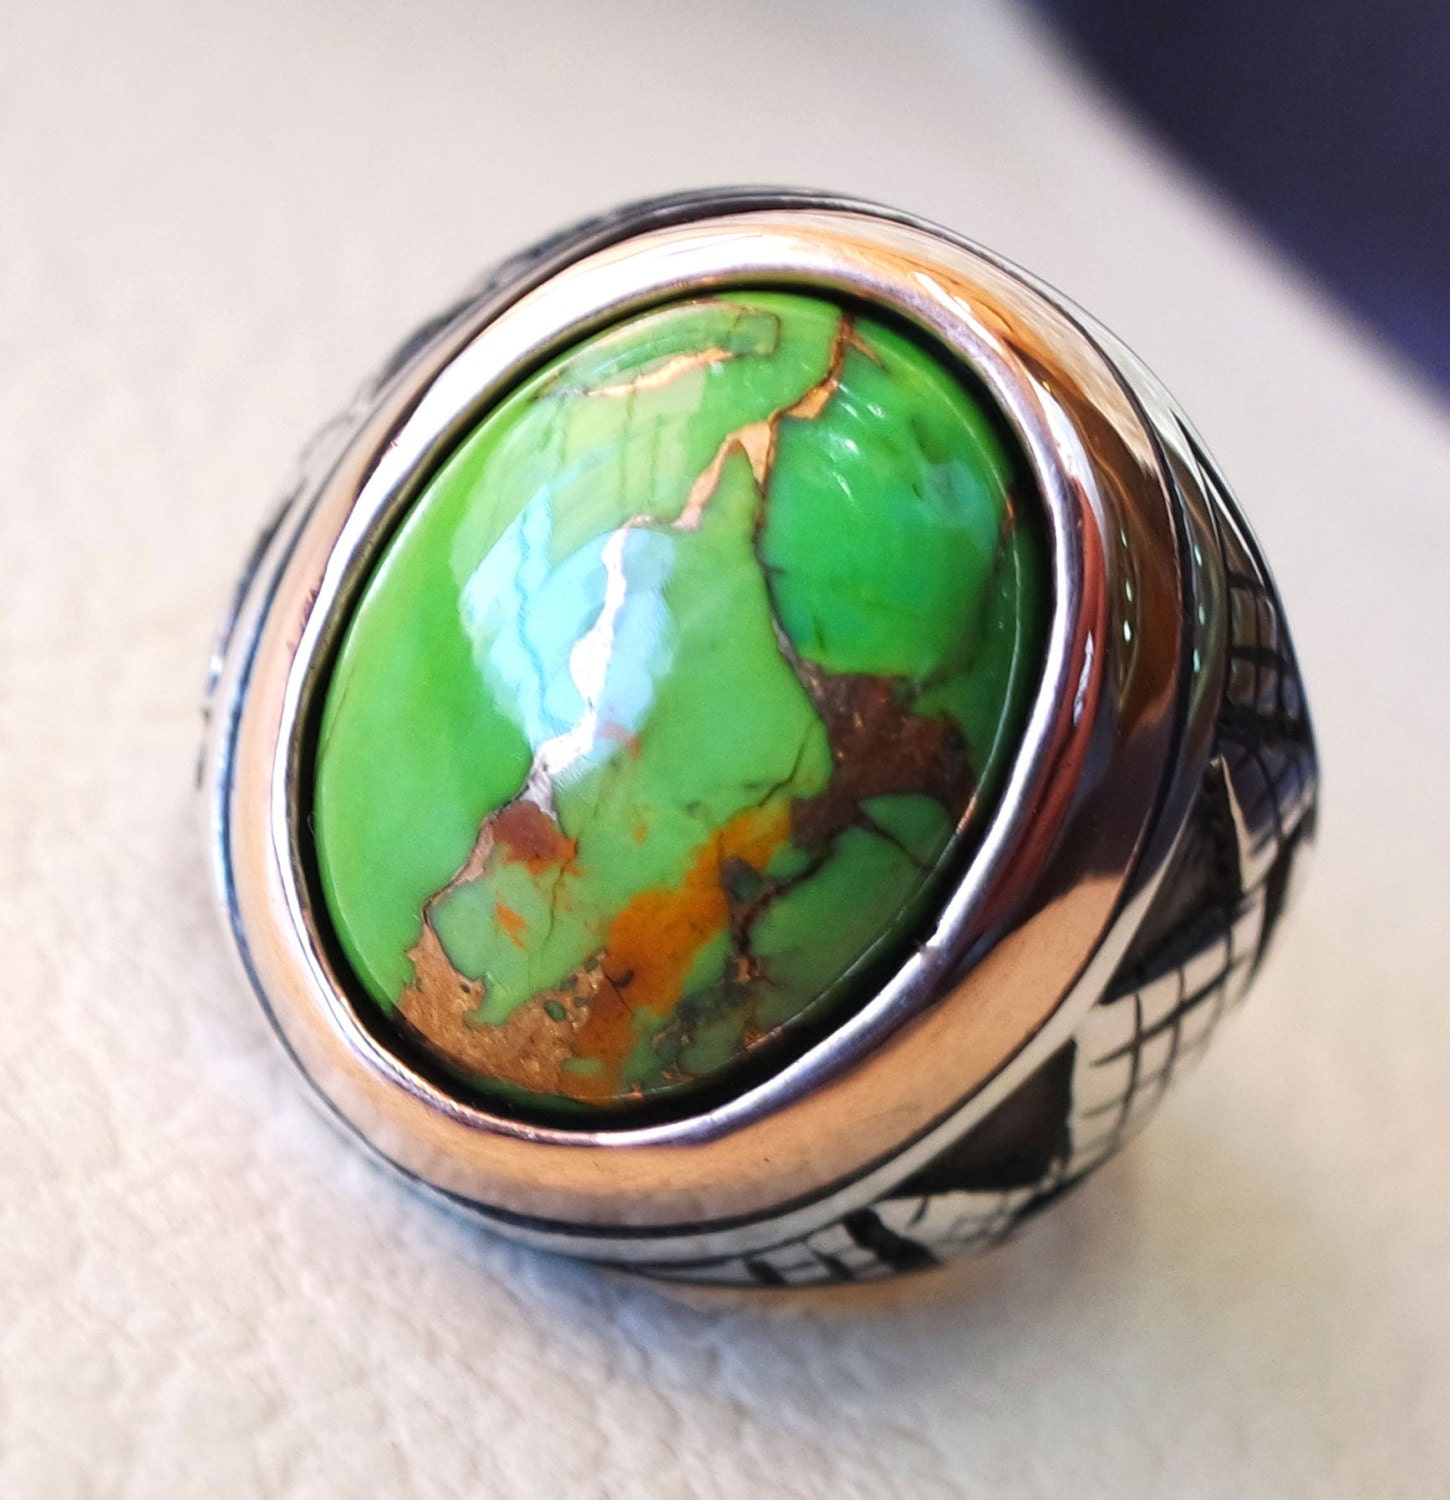 shop oval turquoise stone selection handcrafted new genuine our silver purple artisan gift copper size box sterling usa brand in arizona ring of gemstone jewelry rings